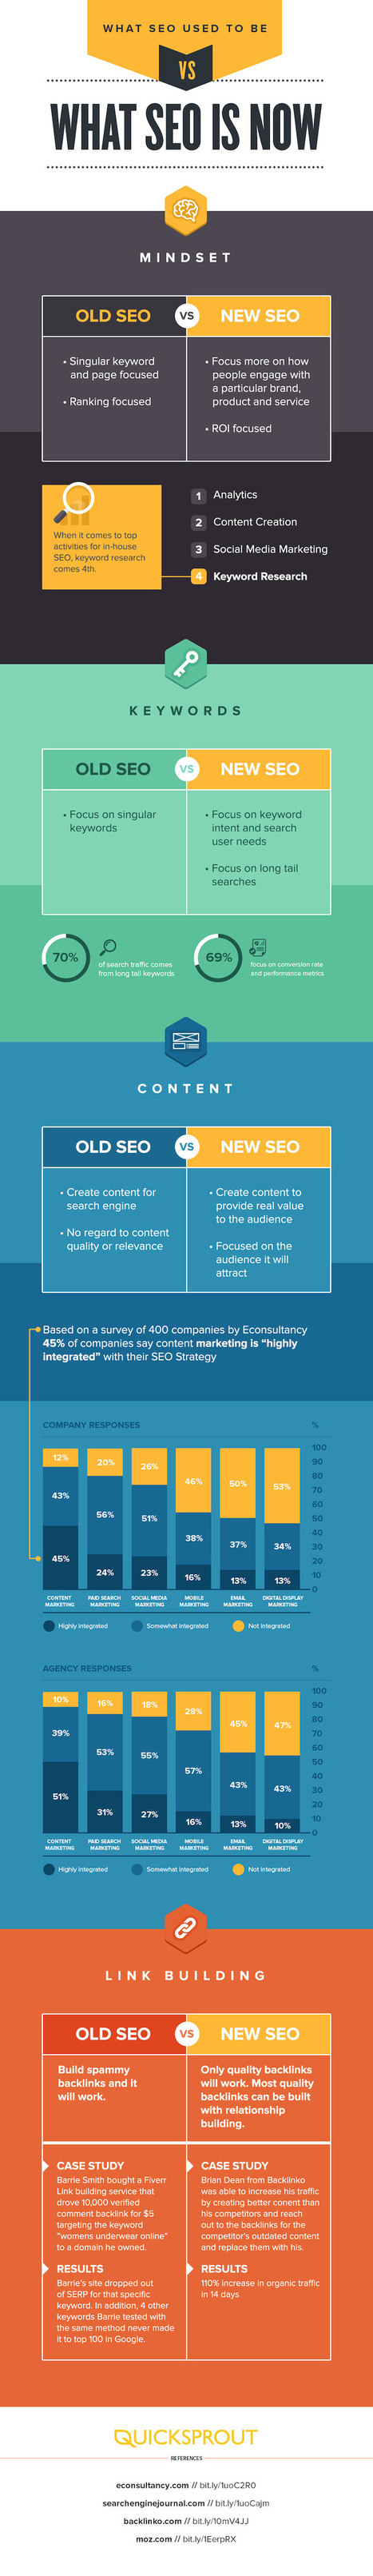 Old SEO vs New SEO: The New Way Must Replace the Old Way | digital marketing strategy | Scoop.it